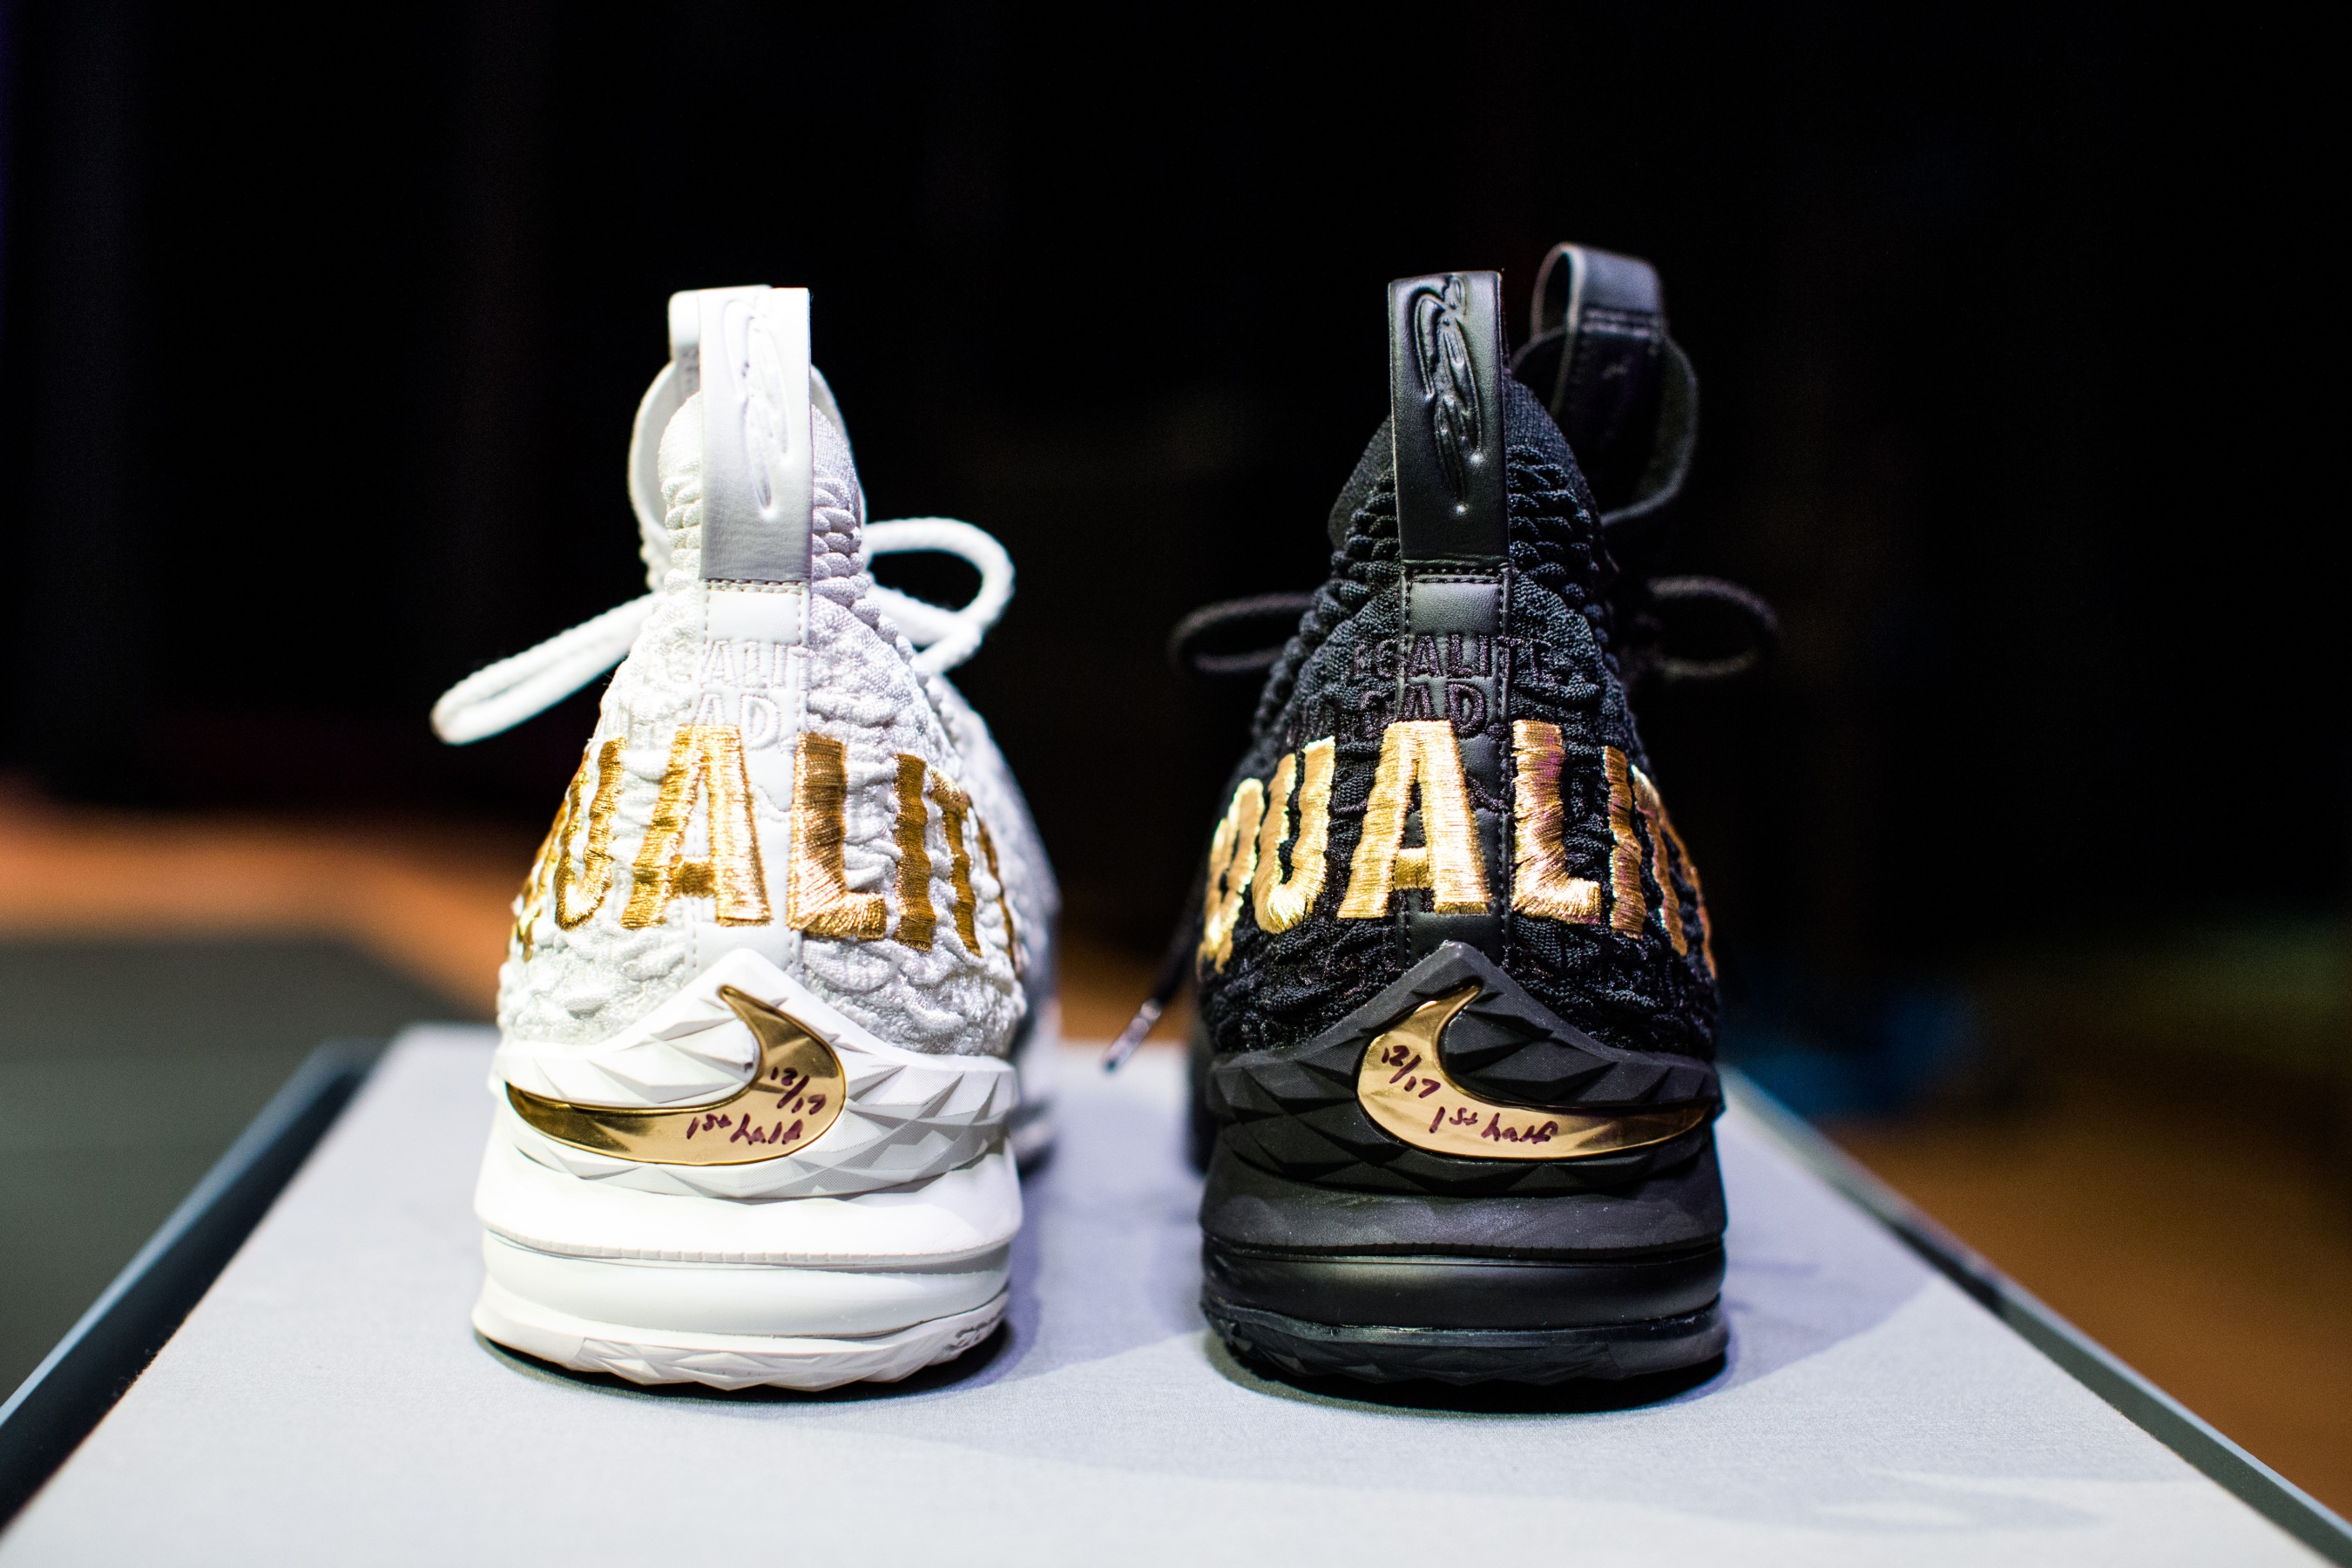 86c196e13f9 The Nike LeBron 15  EQUALITY  sneakers find a home at the Smithsonian